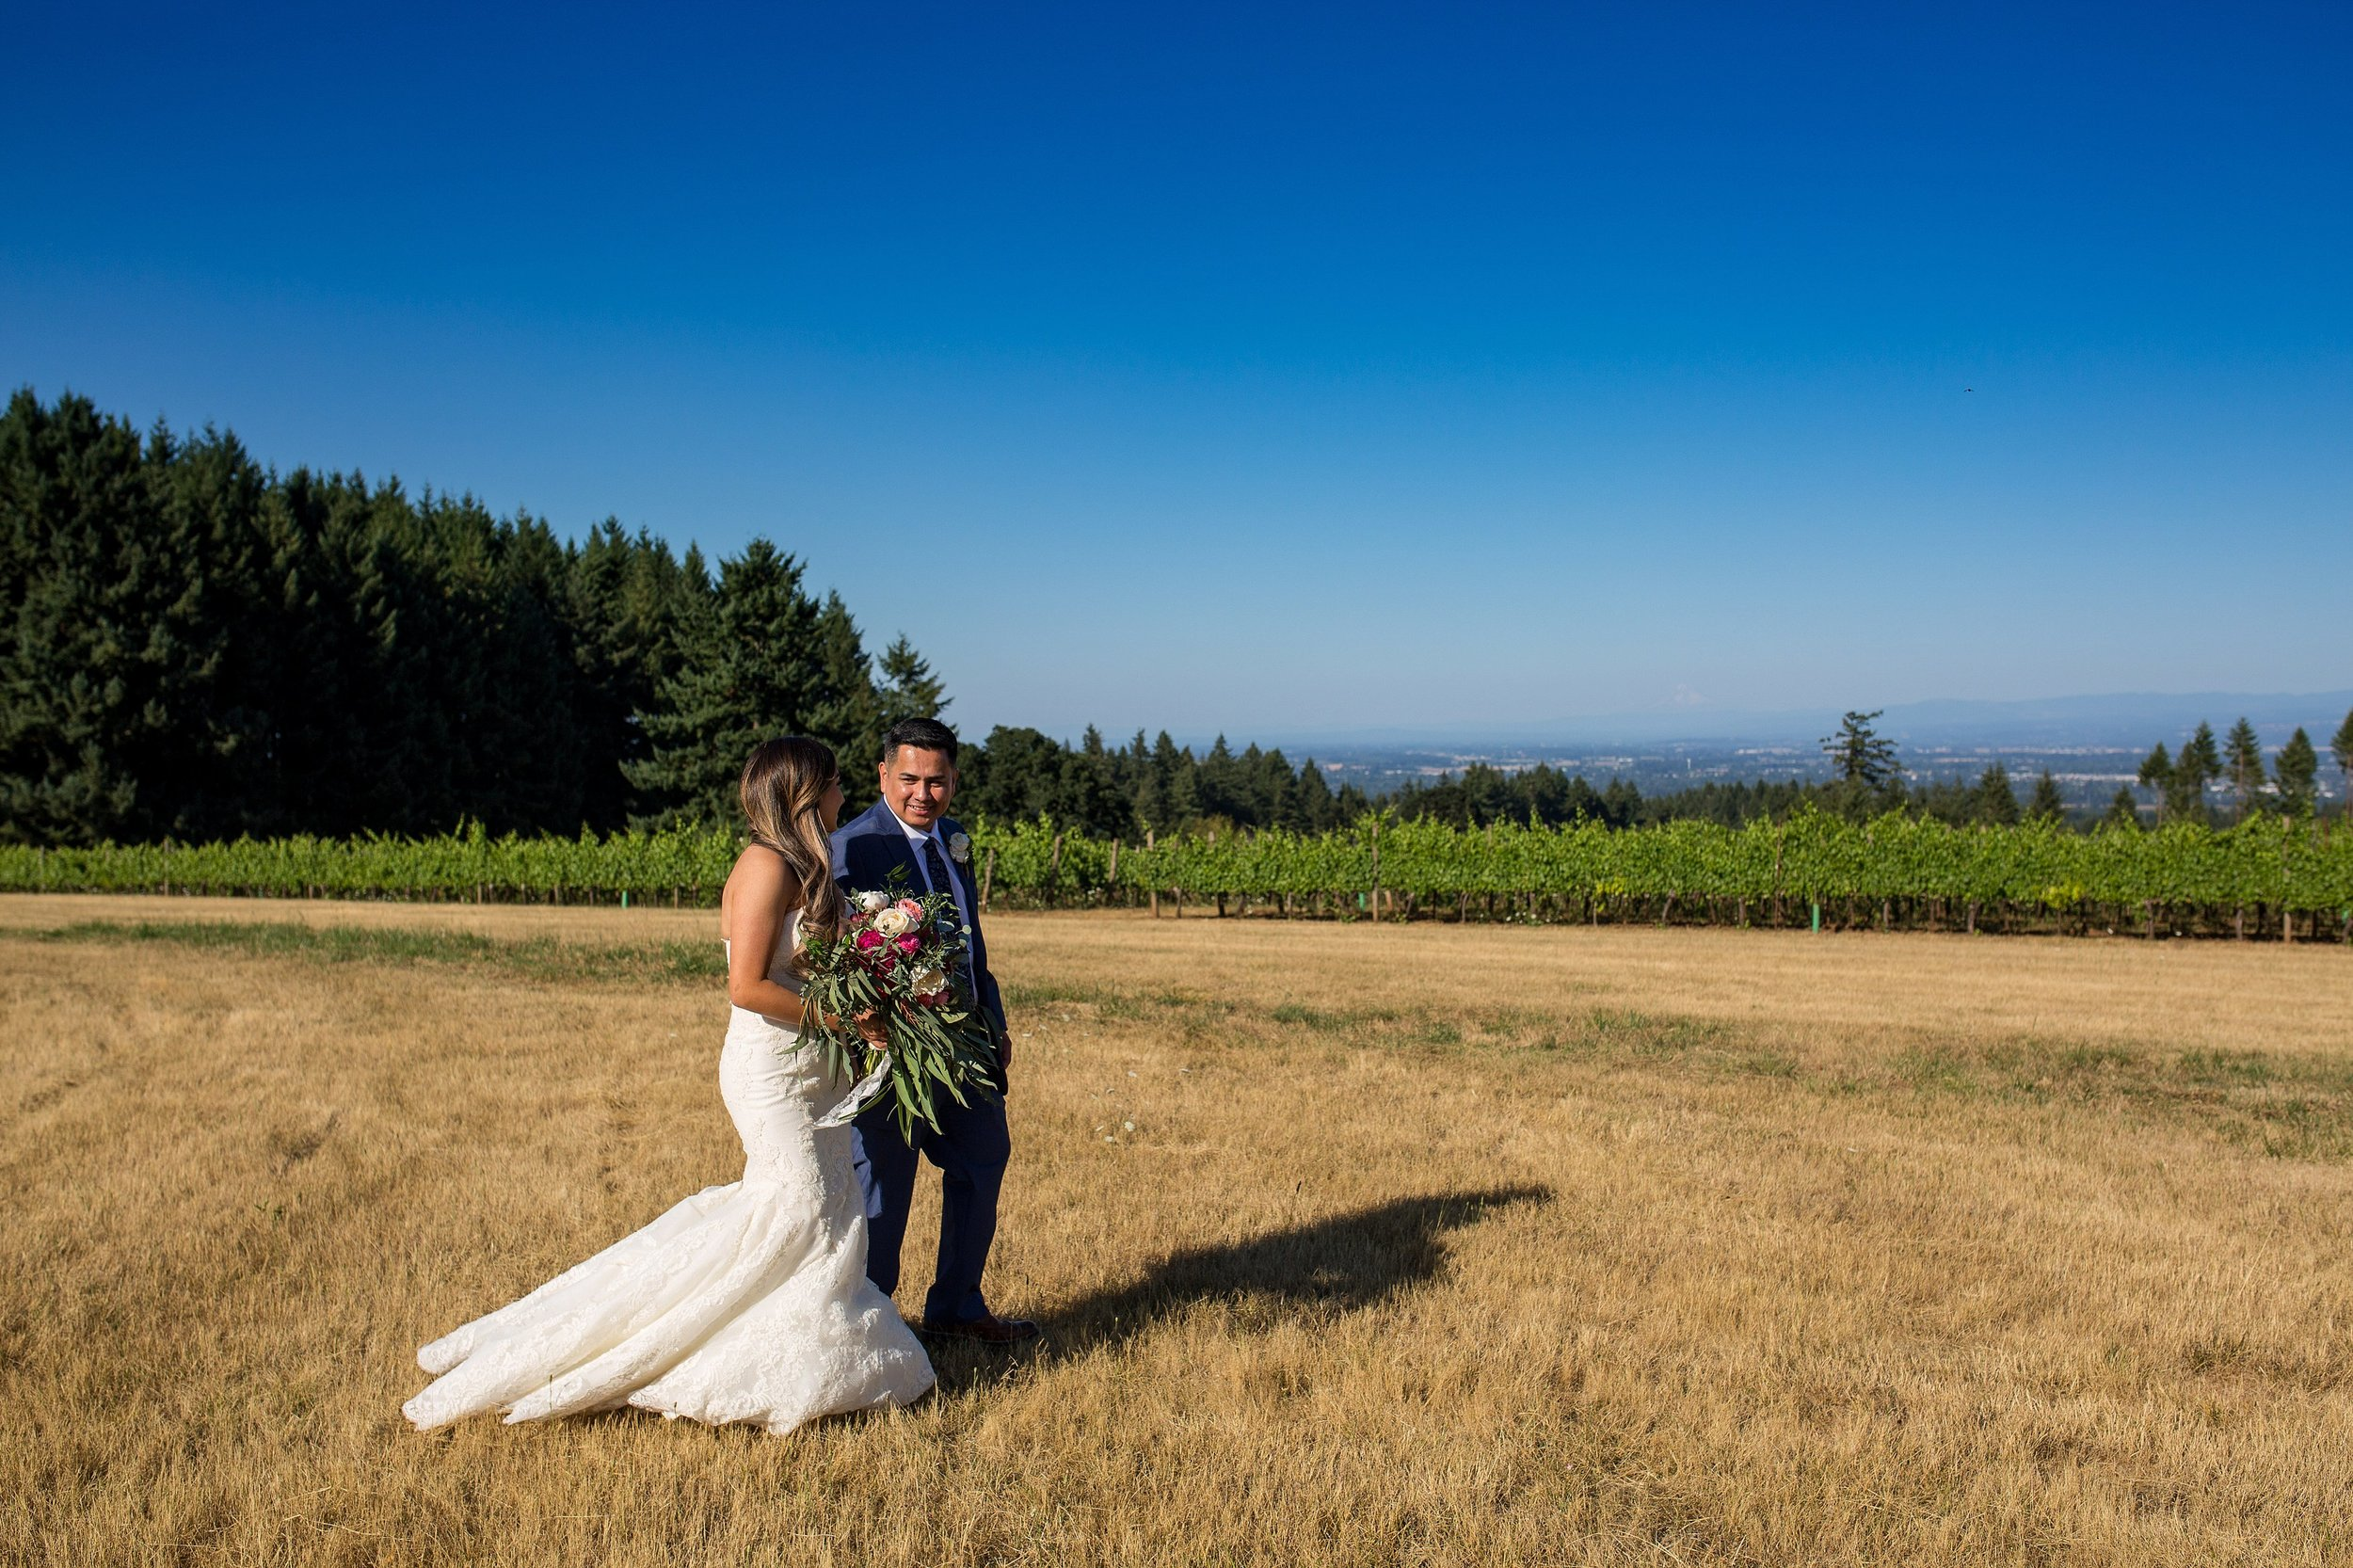 Salem_Oregon_Wedding_Photographer_014.jpg